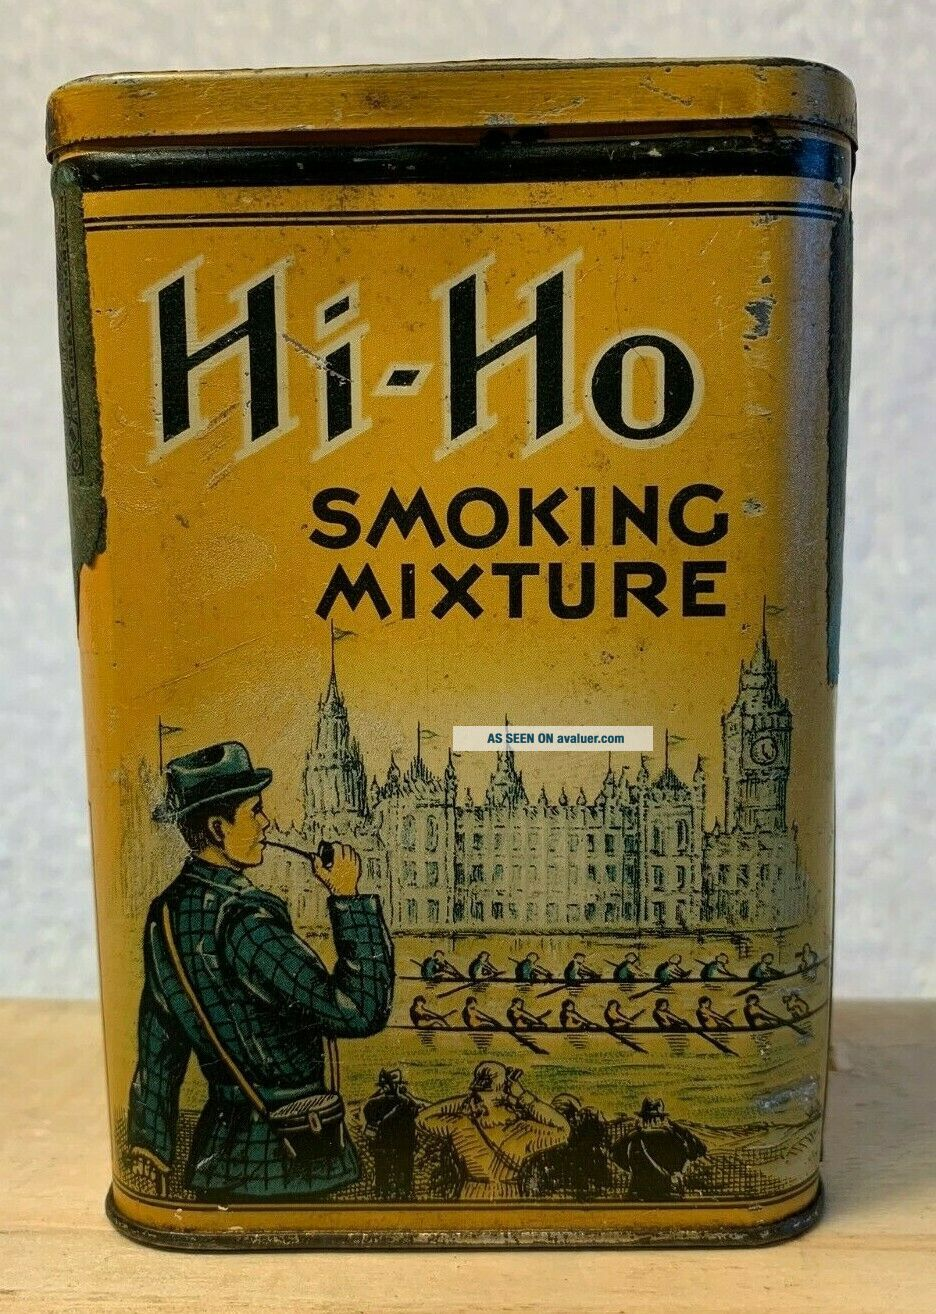 VERY RARE HI - HO POCKET TOBACCO TIN